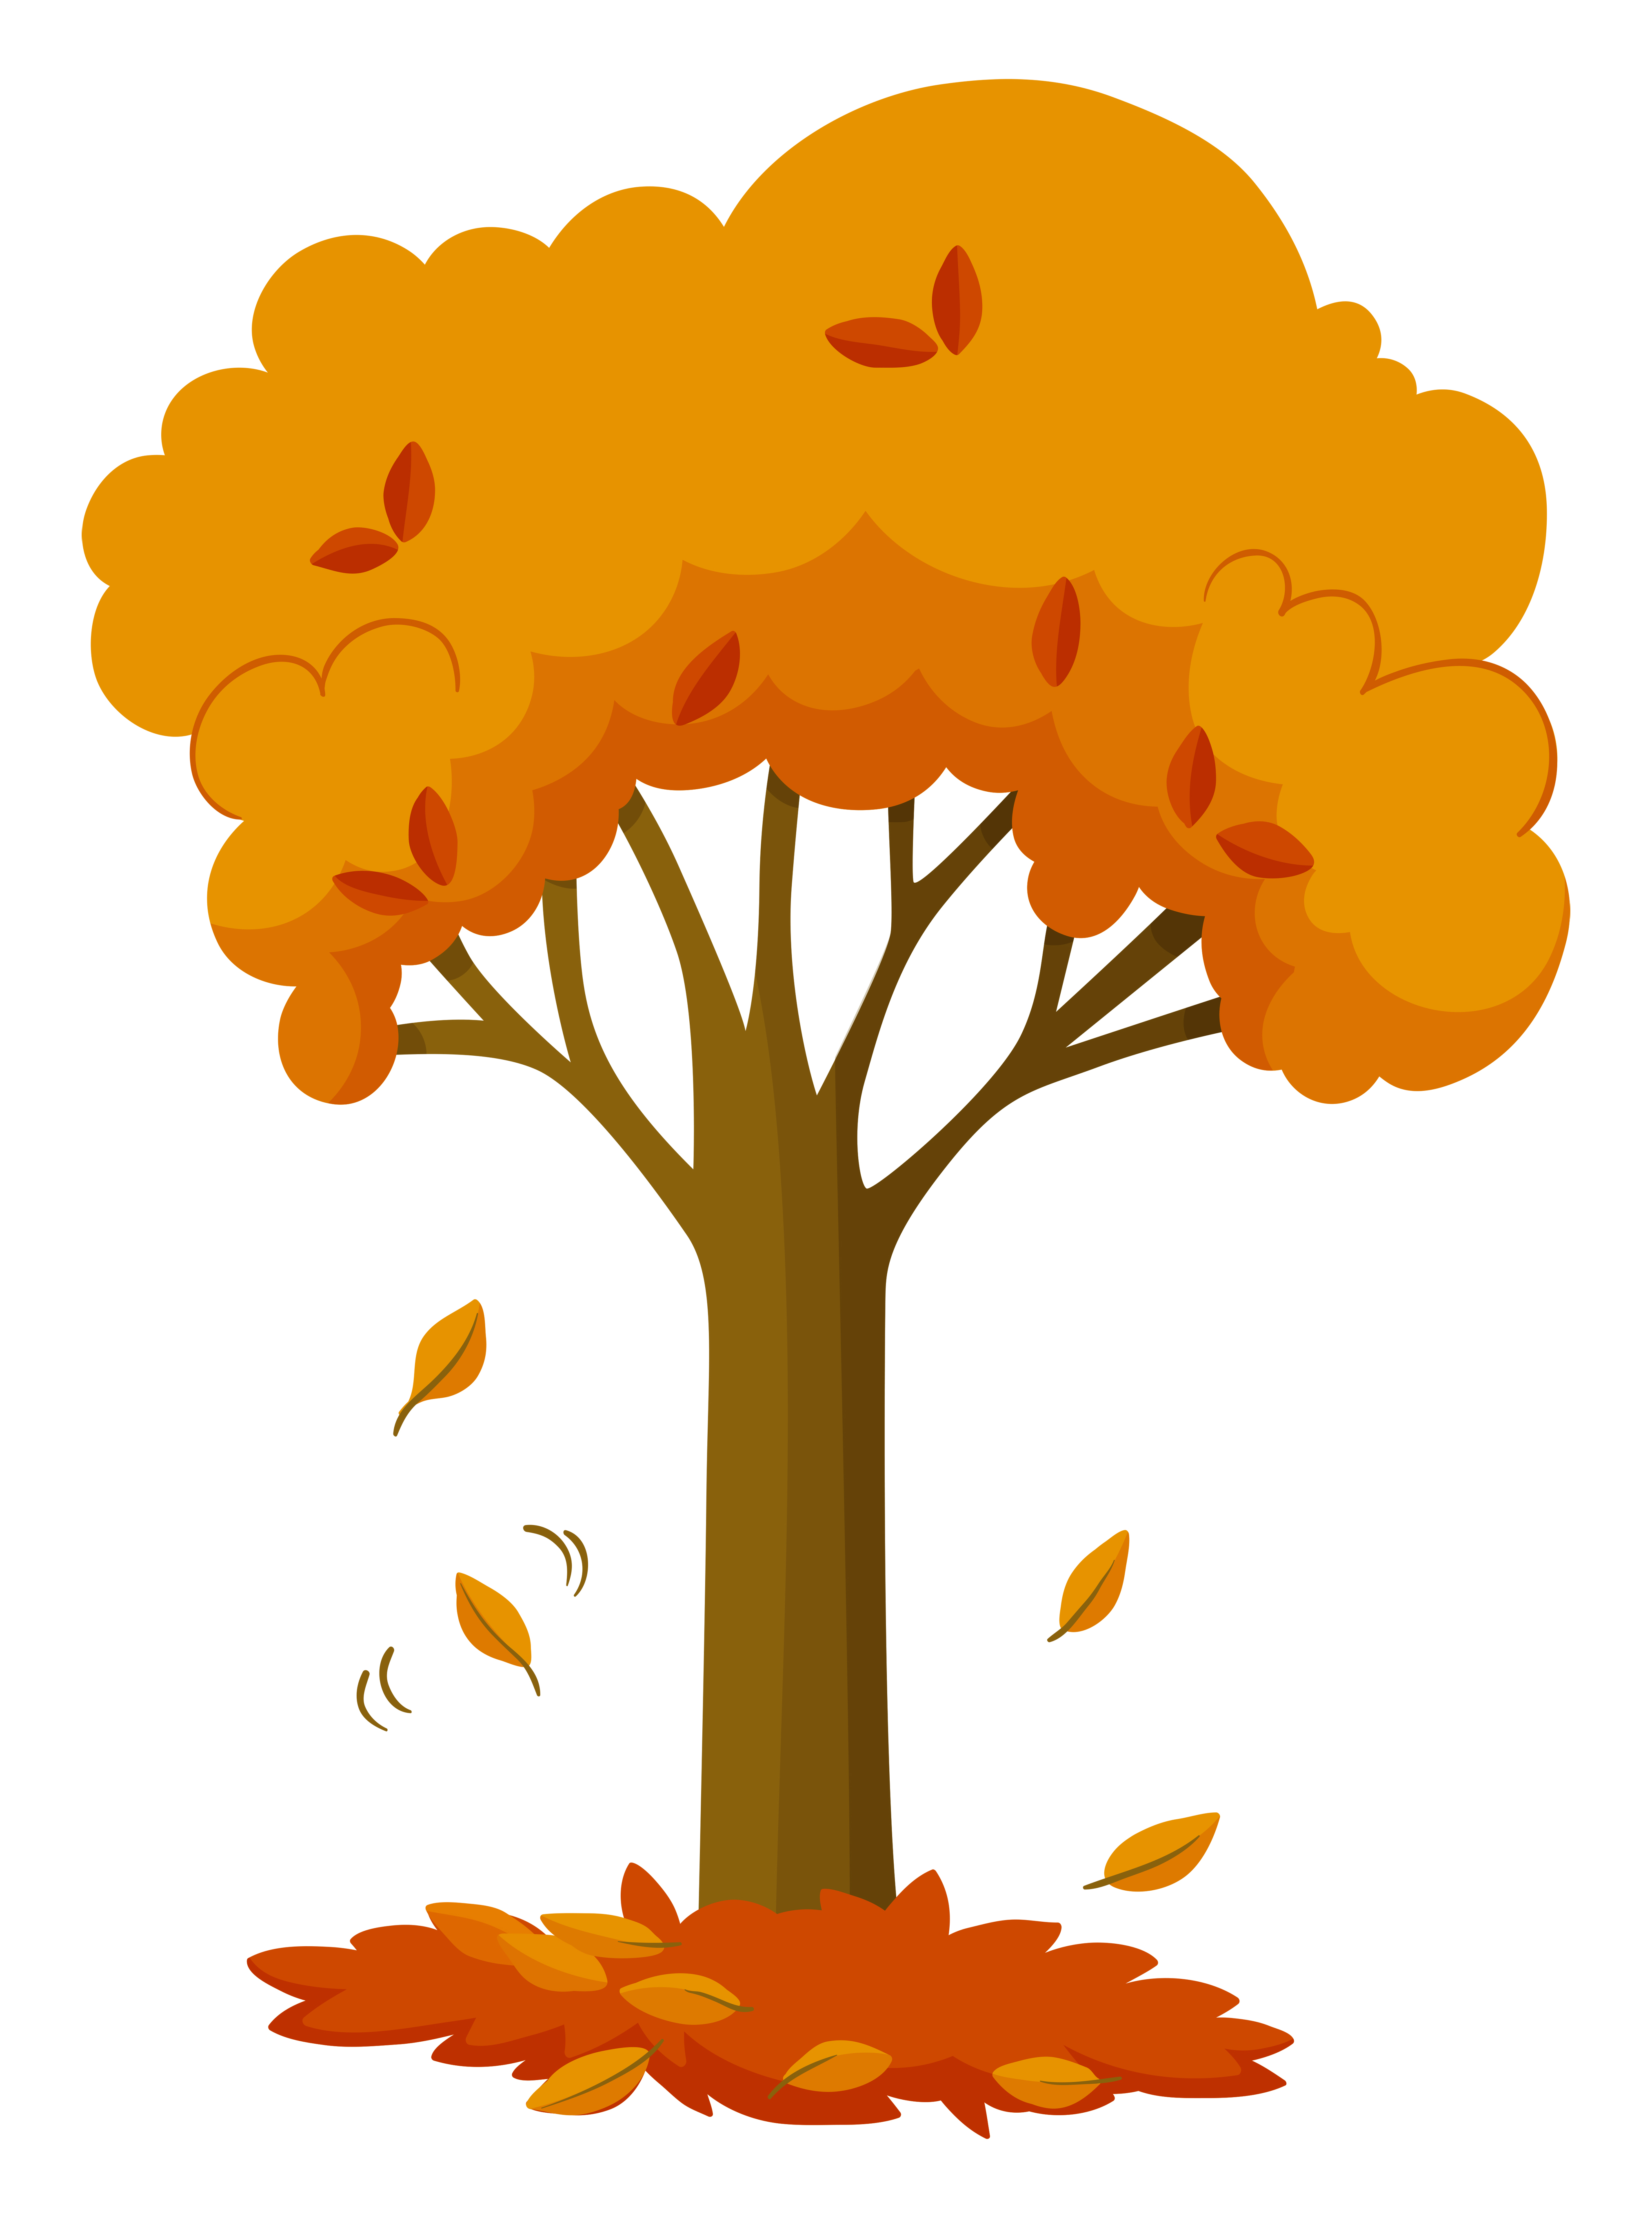 Dry leaves falling off the tree - Download Free Vectors ...